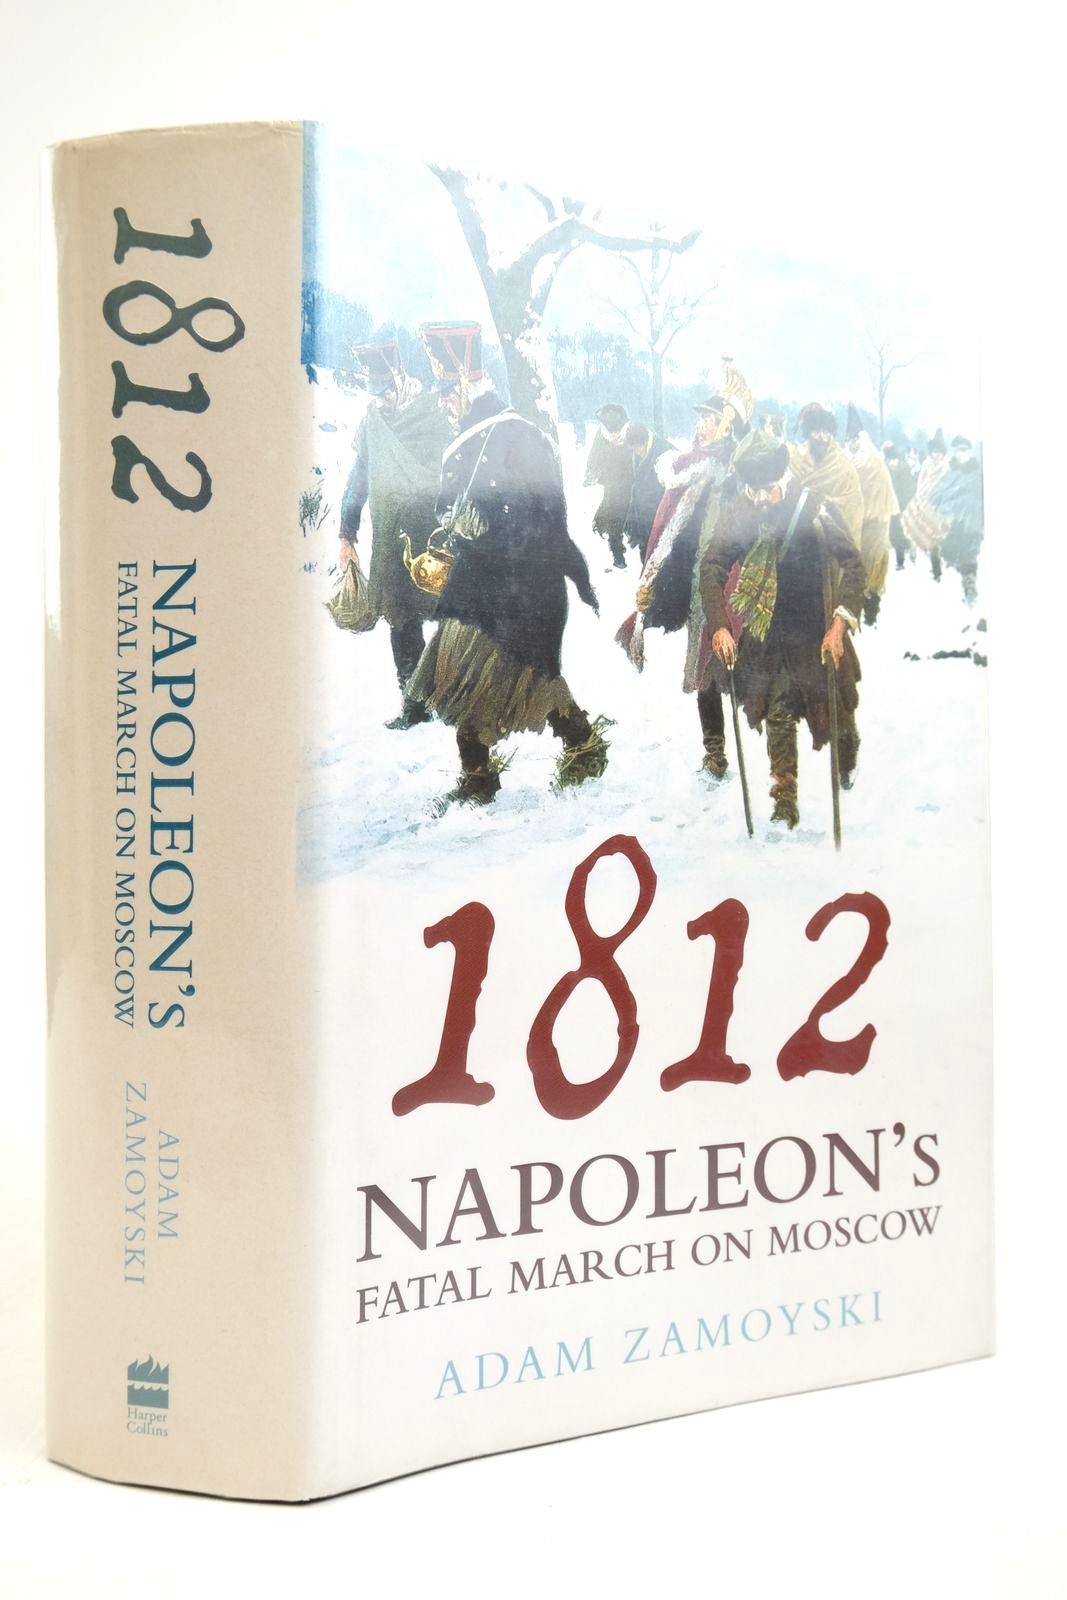 Photo of 1812 NAPOLEON'S FATAL MARCH ON MOSCOW written by Zamoyski, Adam published by Harper Collins (STOCK CODE: 2135396)  for sale by Stella & Rose's Books